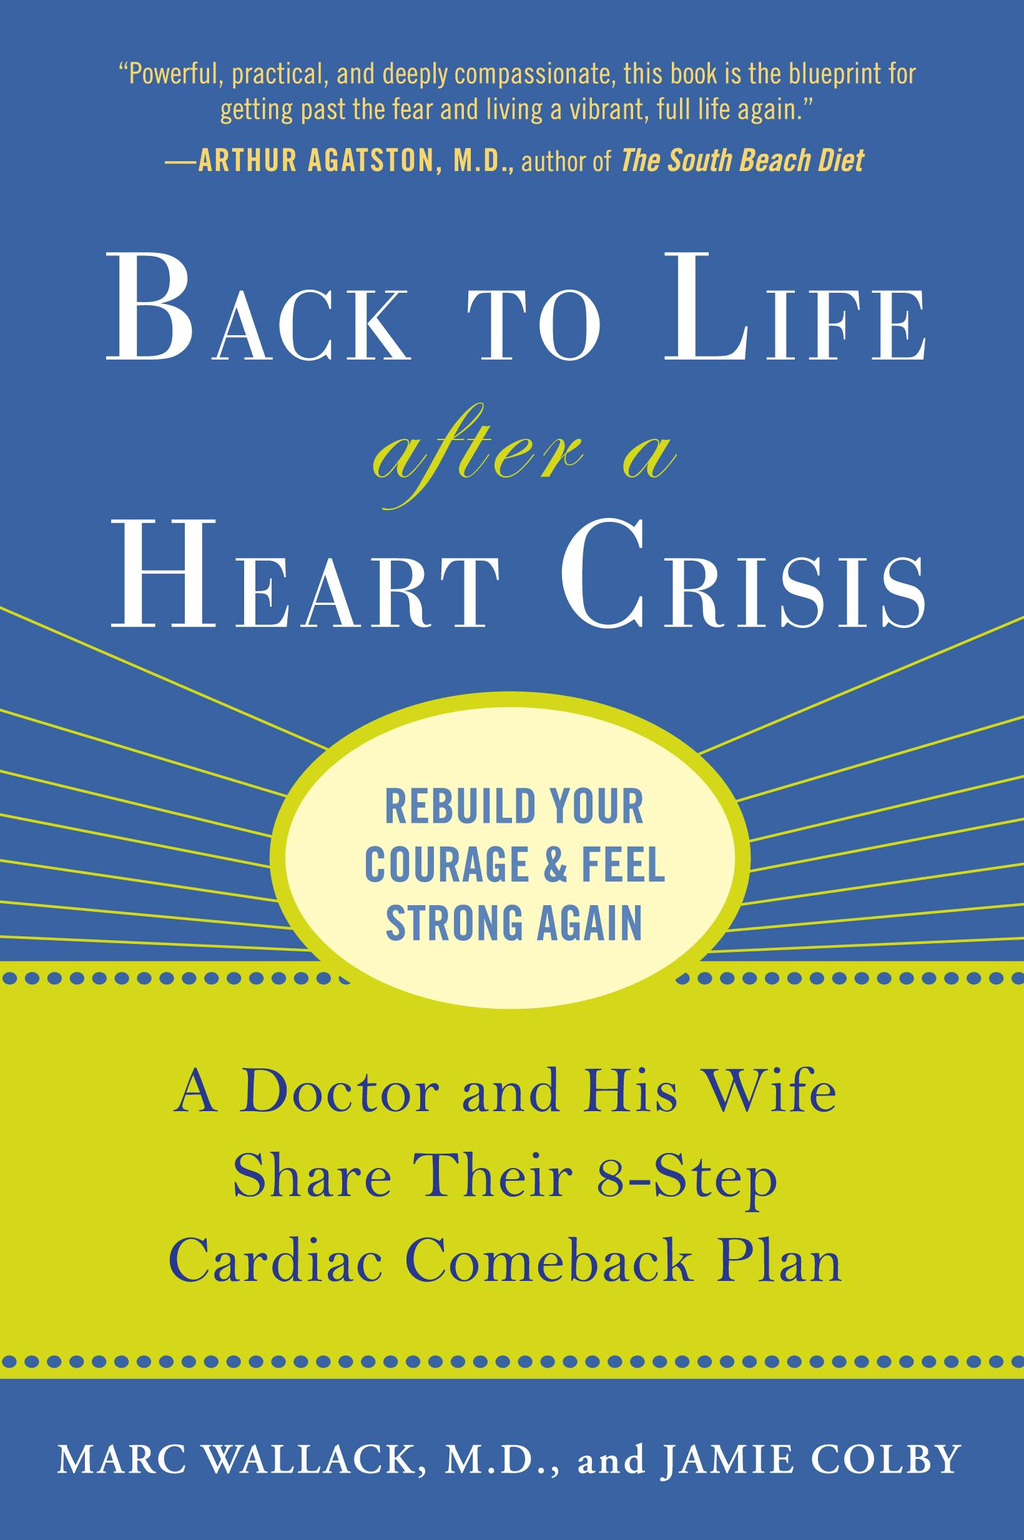 Back to Life After a Heart Crisis By: Jamie Colby,Marc Wallack,  M.D.